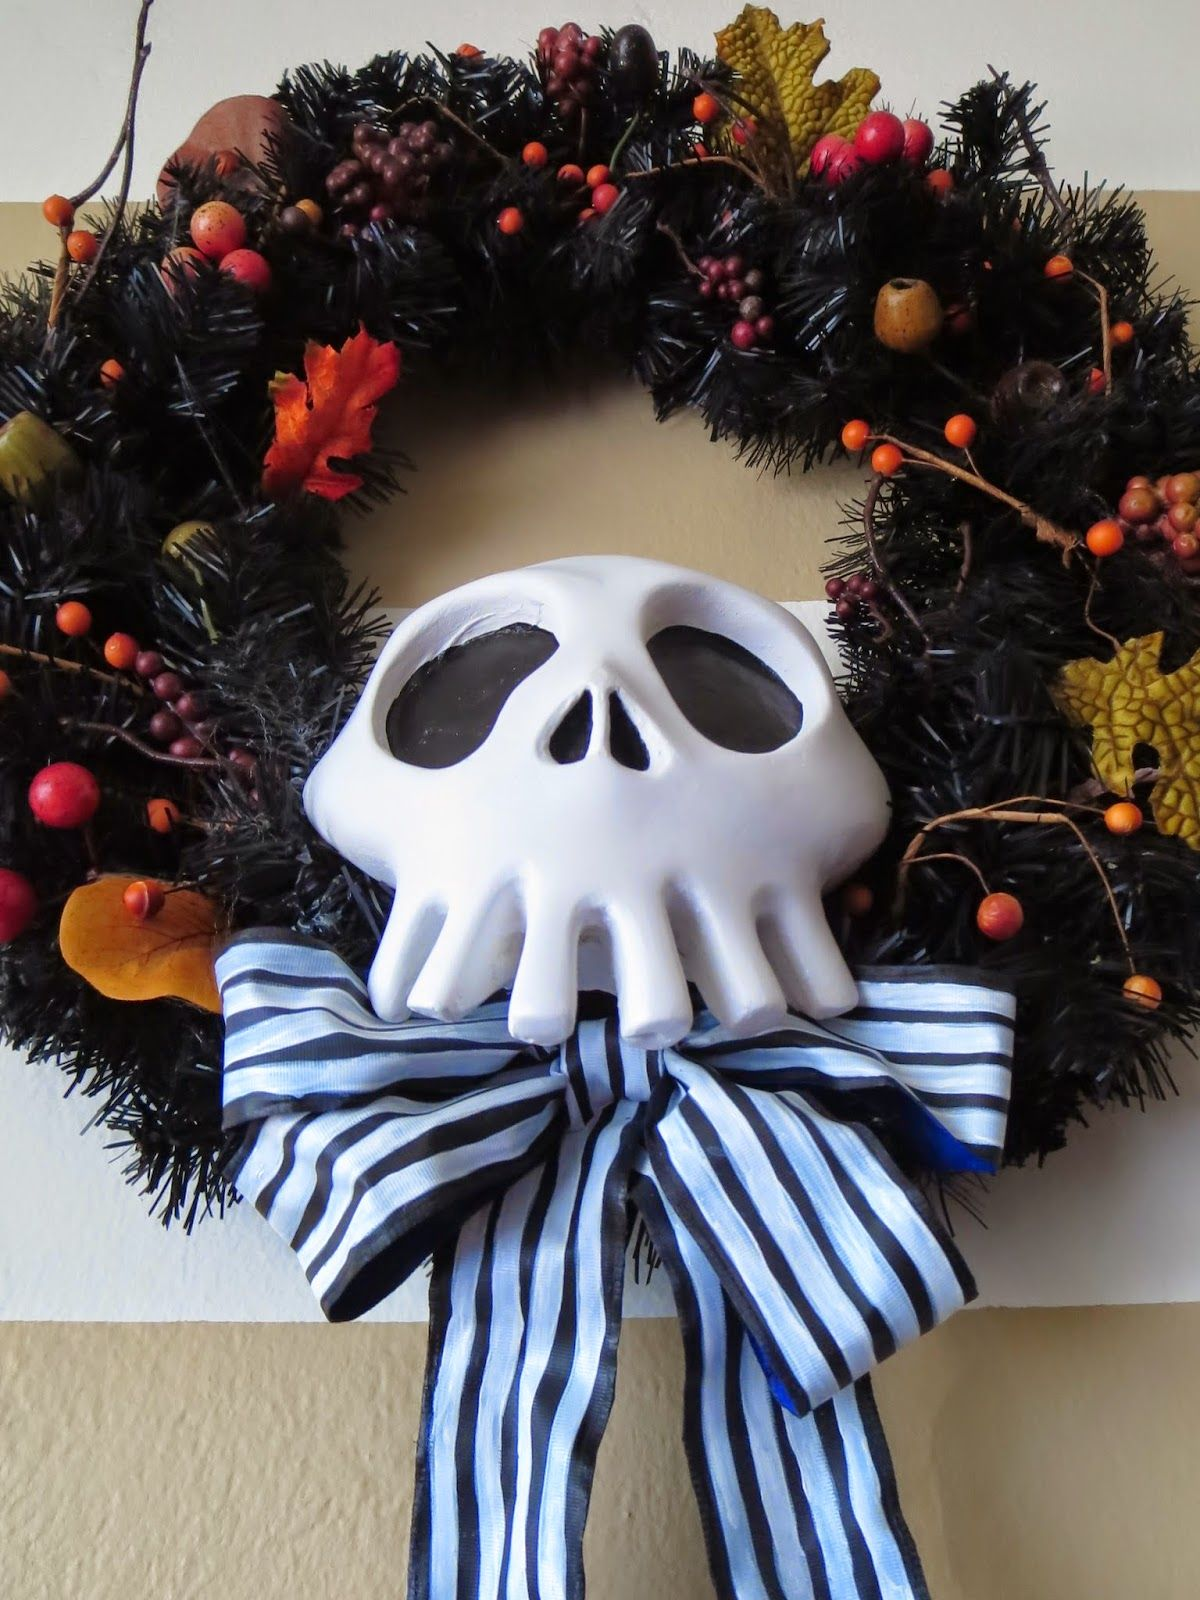 Diy Nightmare Before Christmas Decoration Handmade By Me With